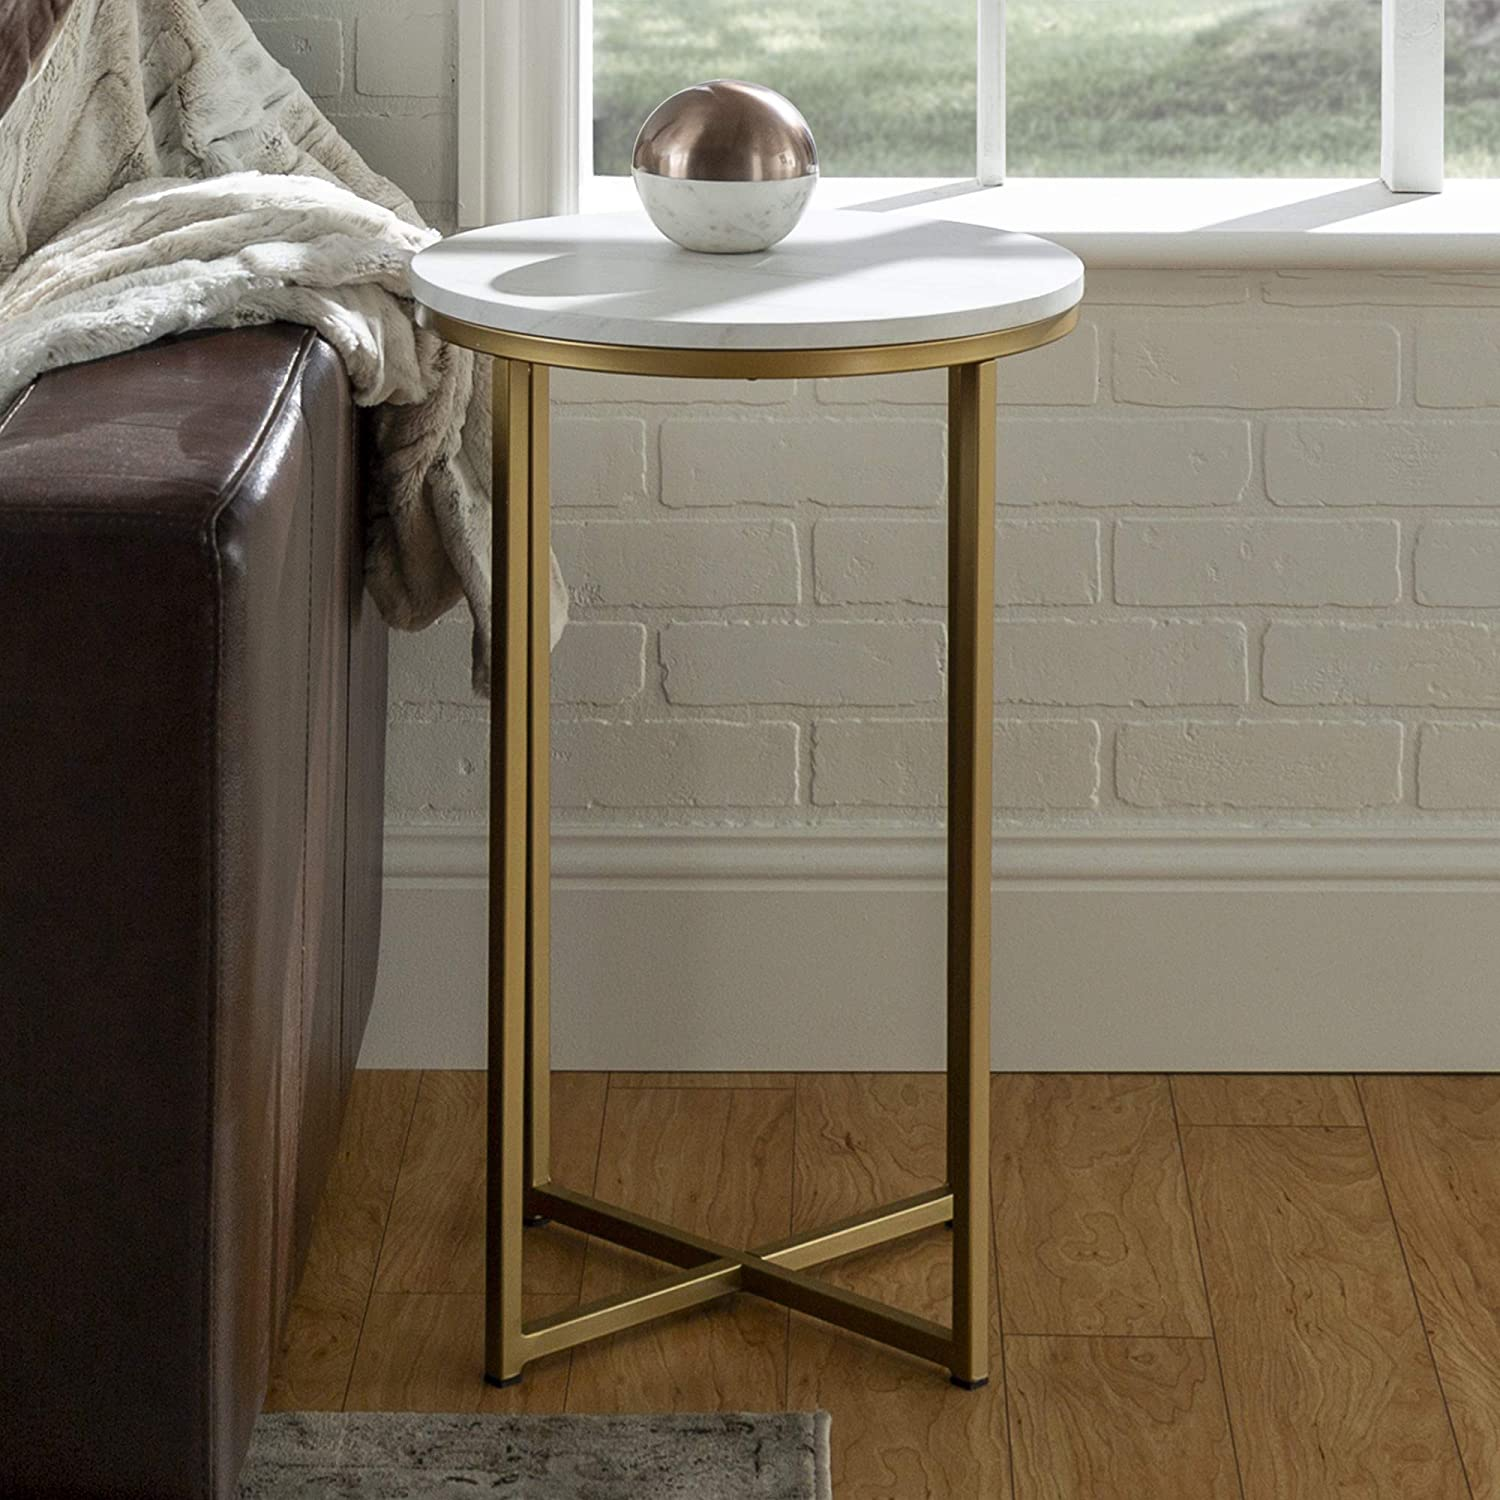 New 16 Inch Round Side Table In Gold With Faux Marble Top Kitchen Dining